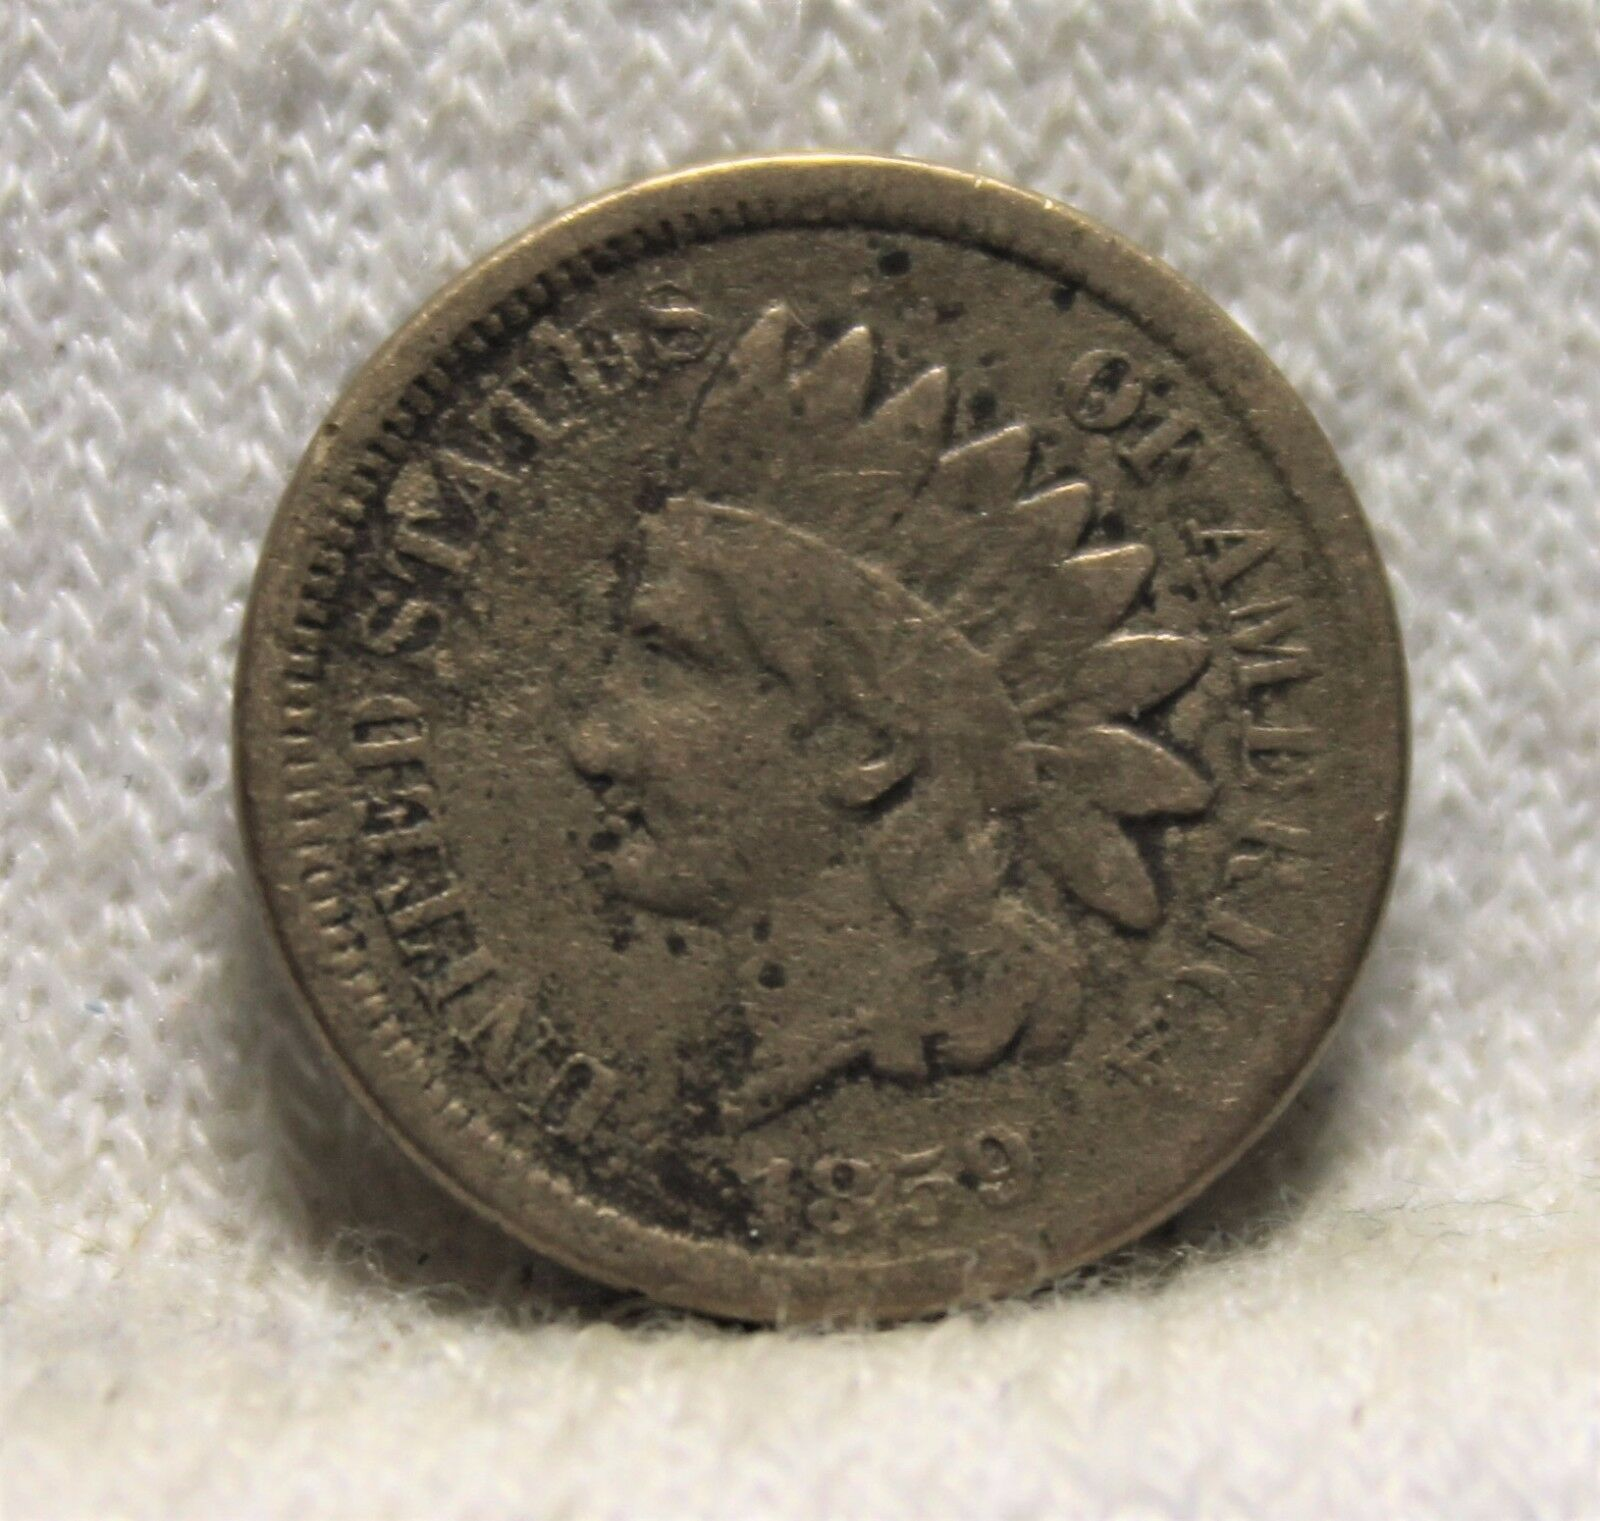 1859 Indian Head Penny - $12.95